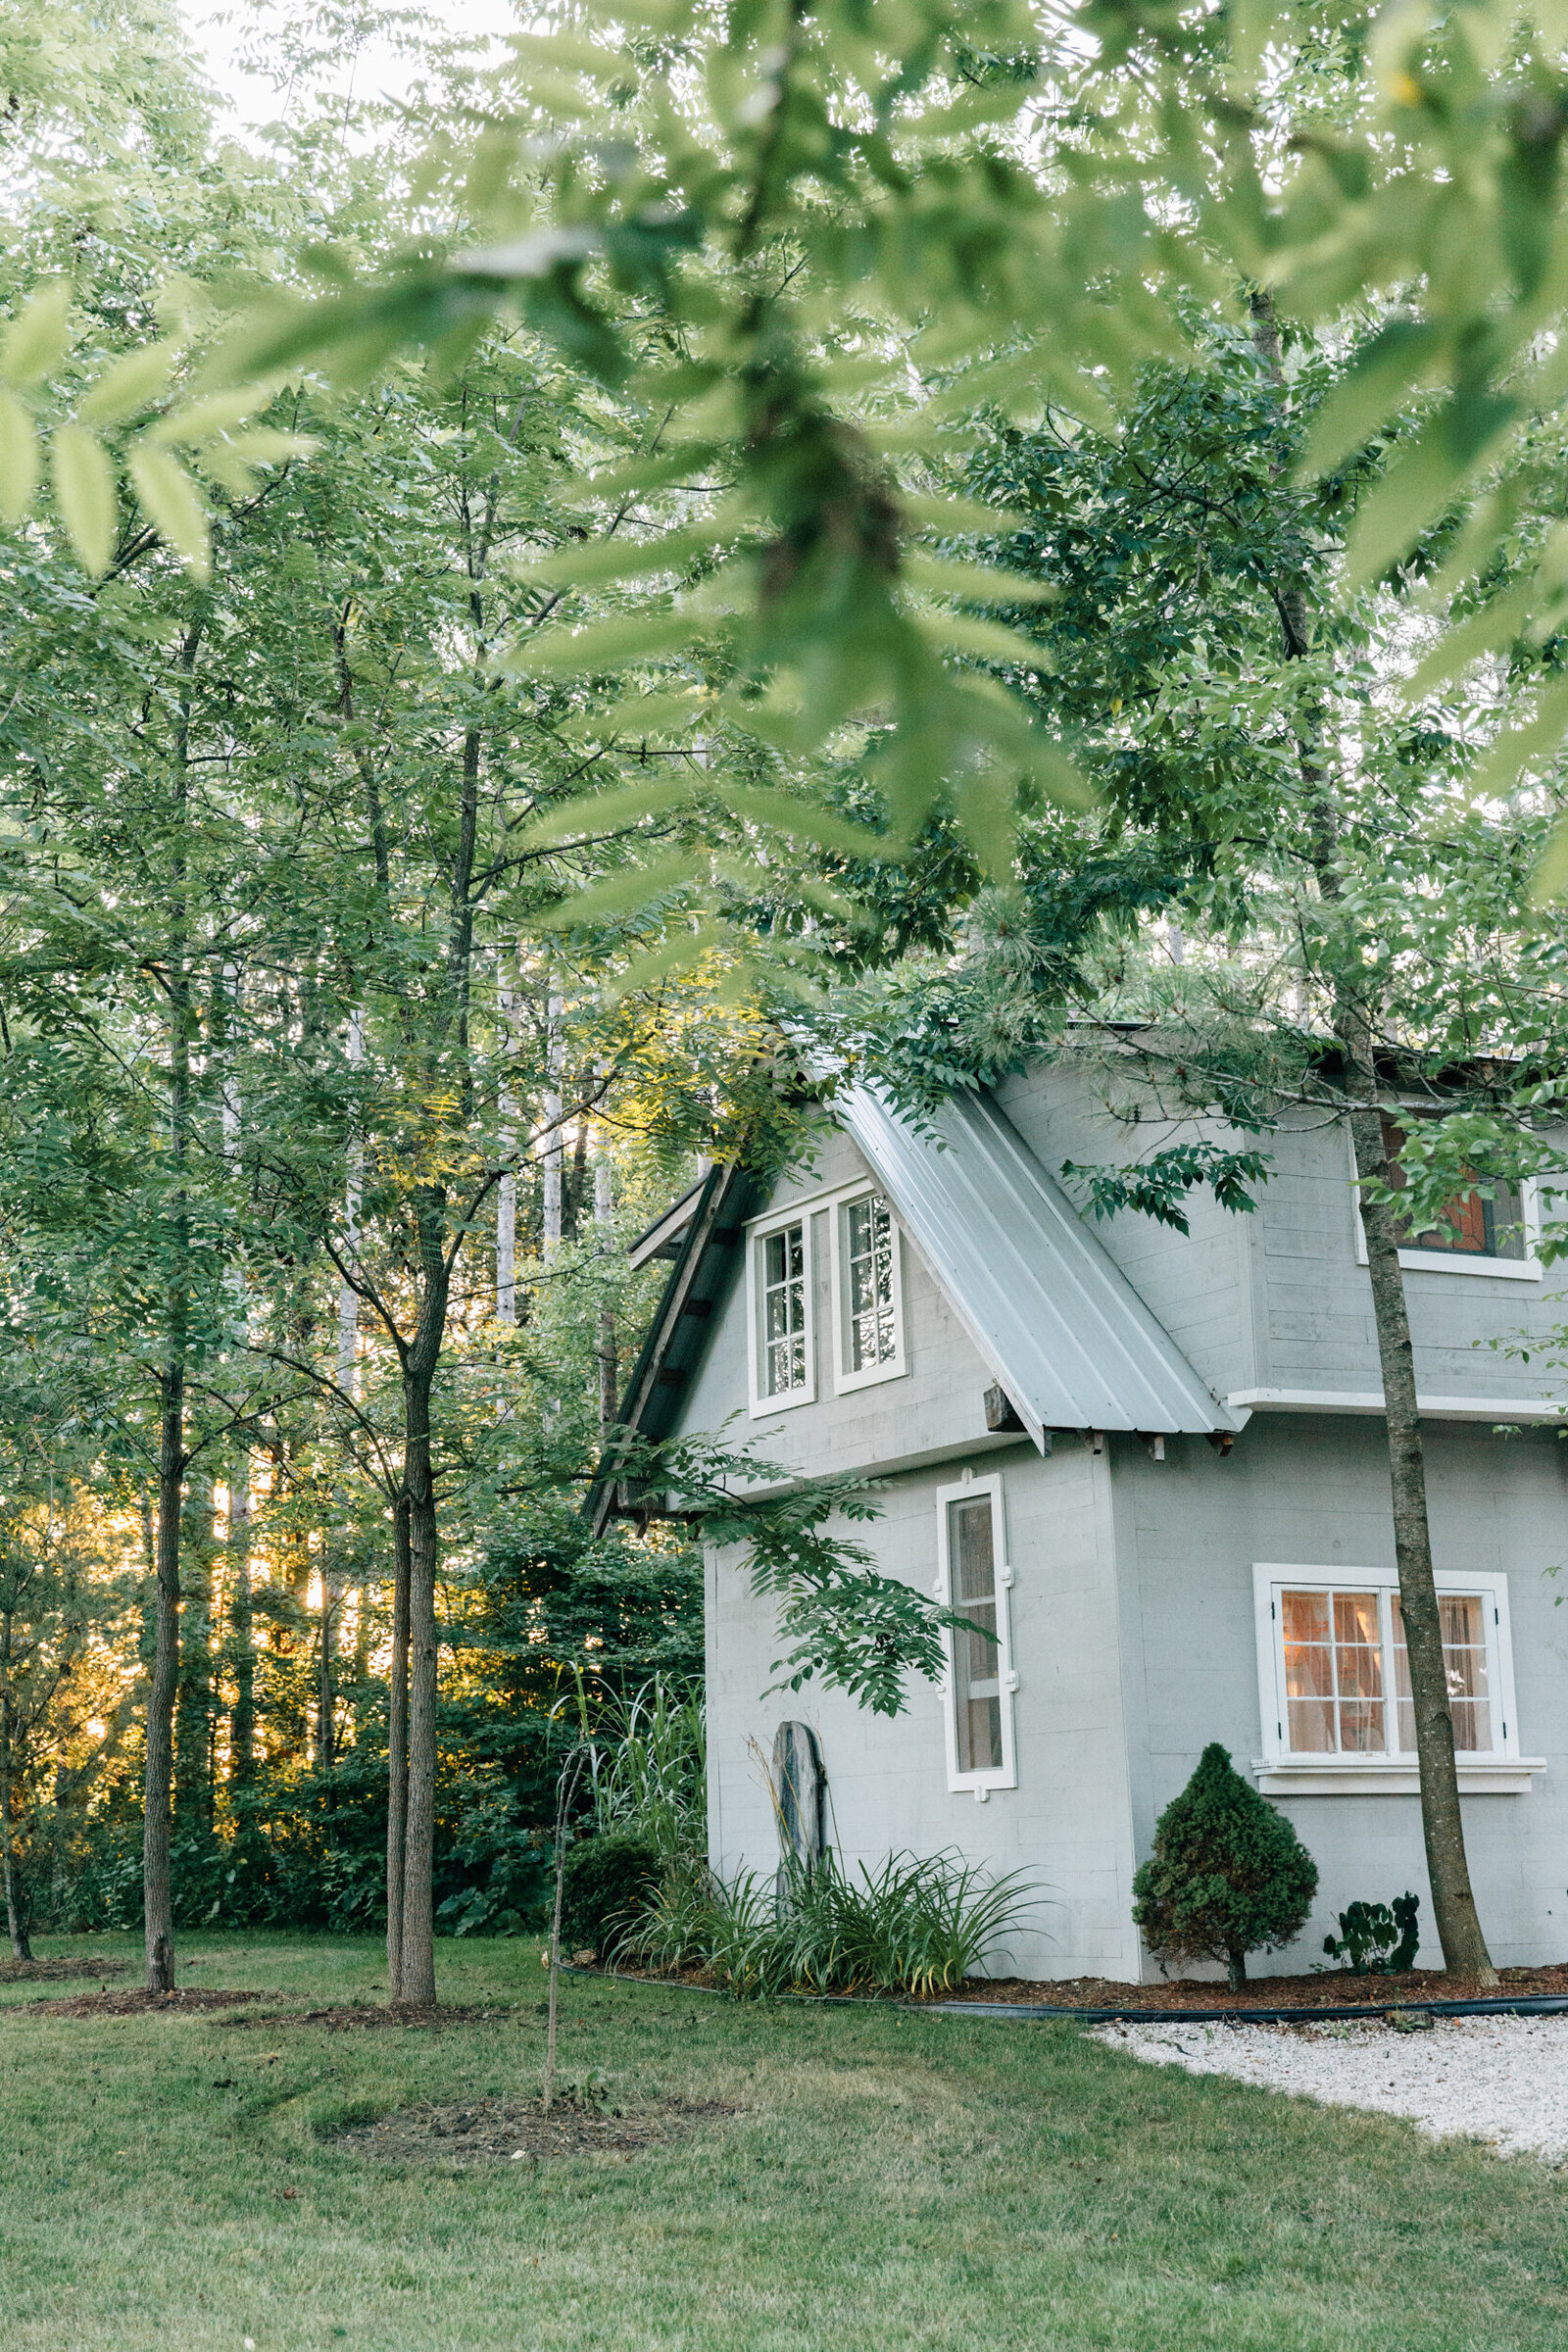 Treehouse-Cabin-Retreat-Vacation-Rental-Lynne-Knowlton-Lynneknowlton.com-90